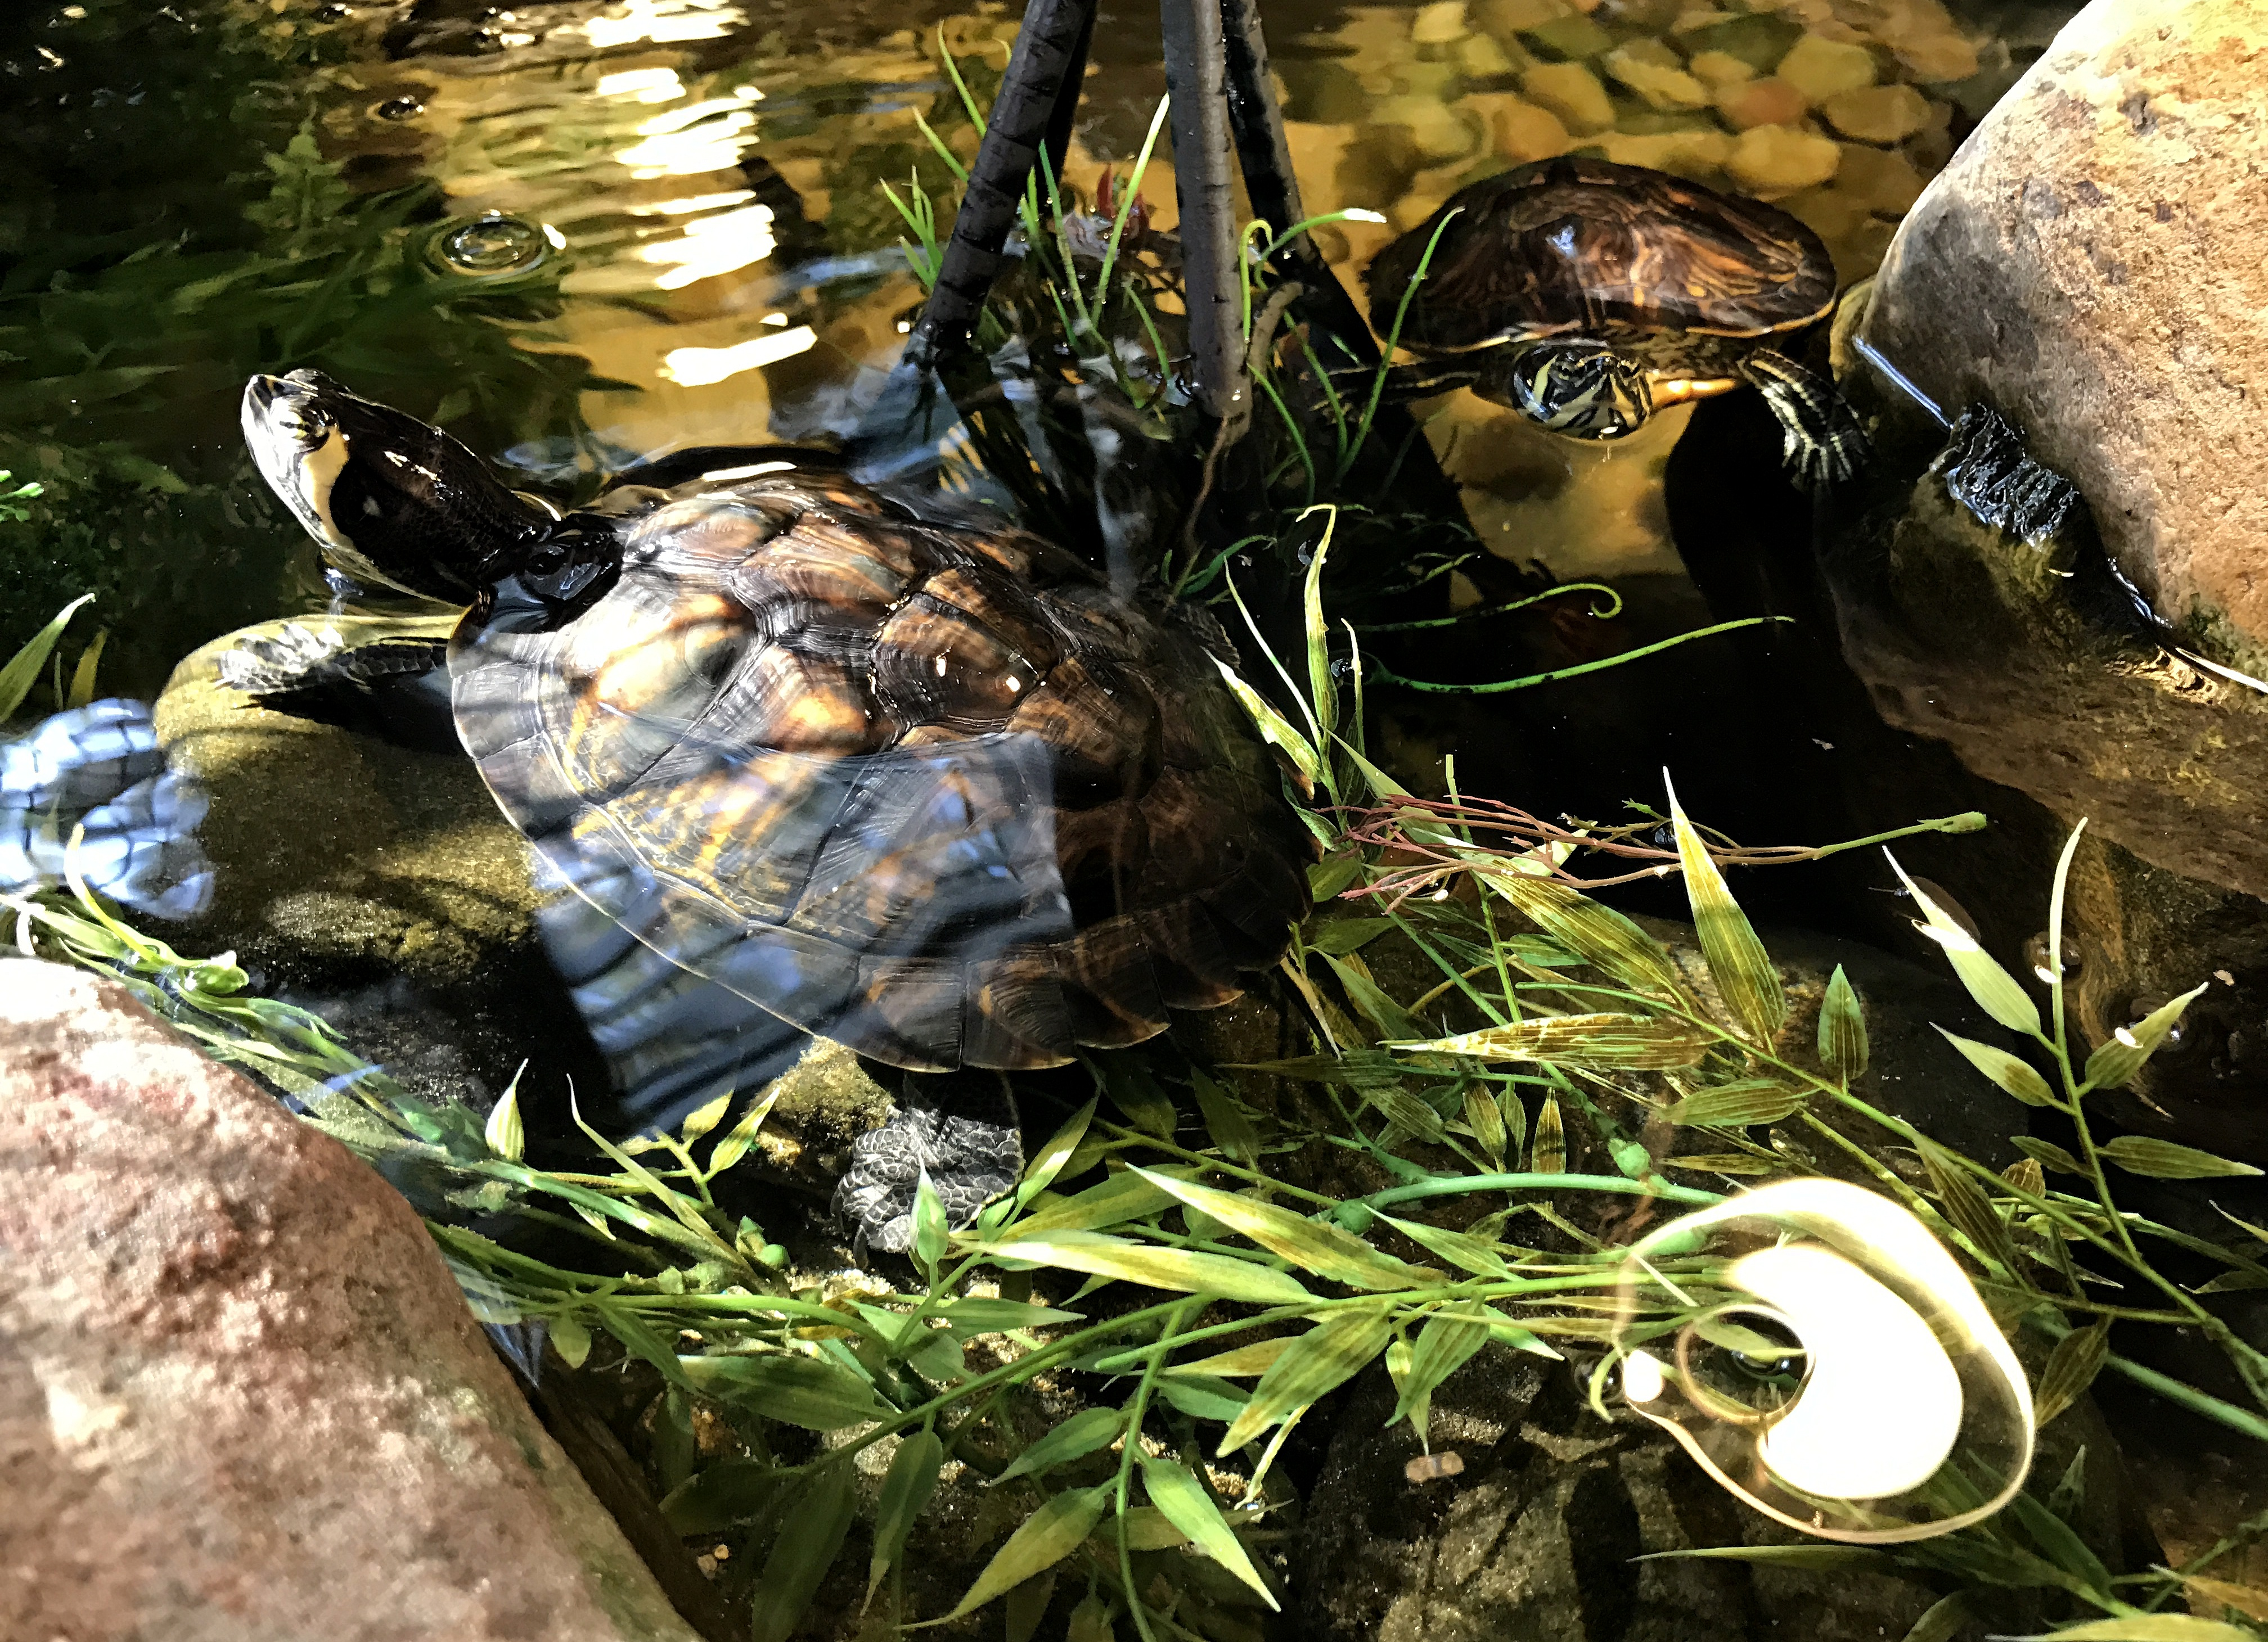 YBST ~ Yellow Bellied Slider Turtles–Quarterly Update, 10/21